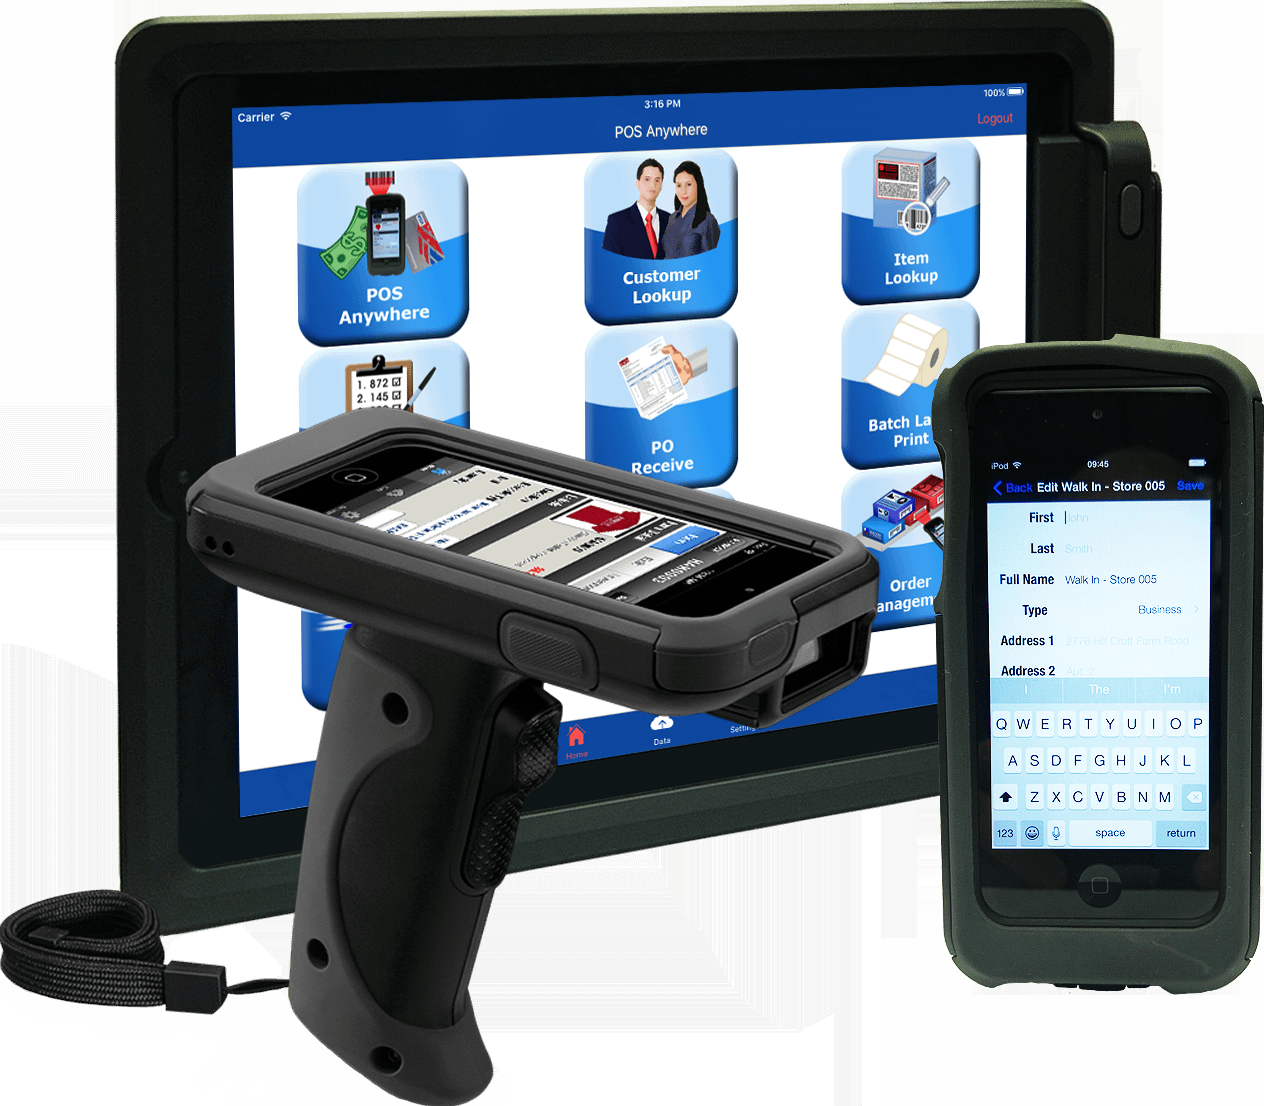 3 different devices for mobile POS - POS anywhere